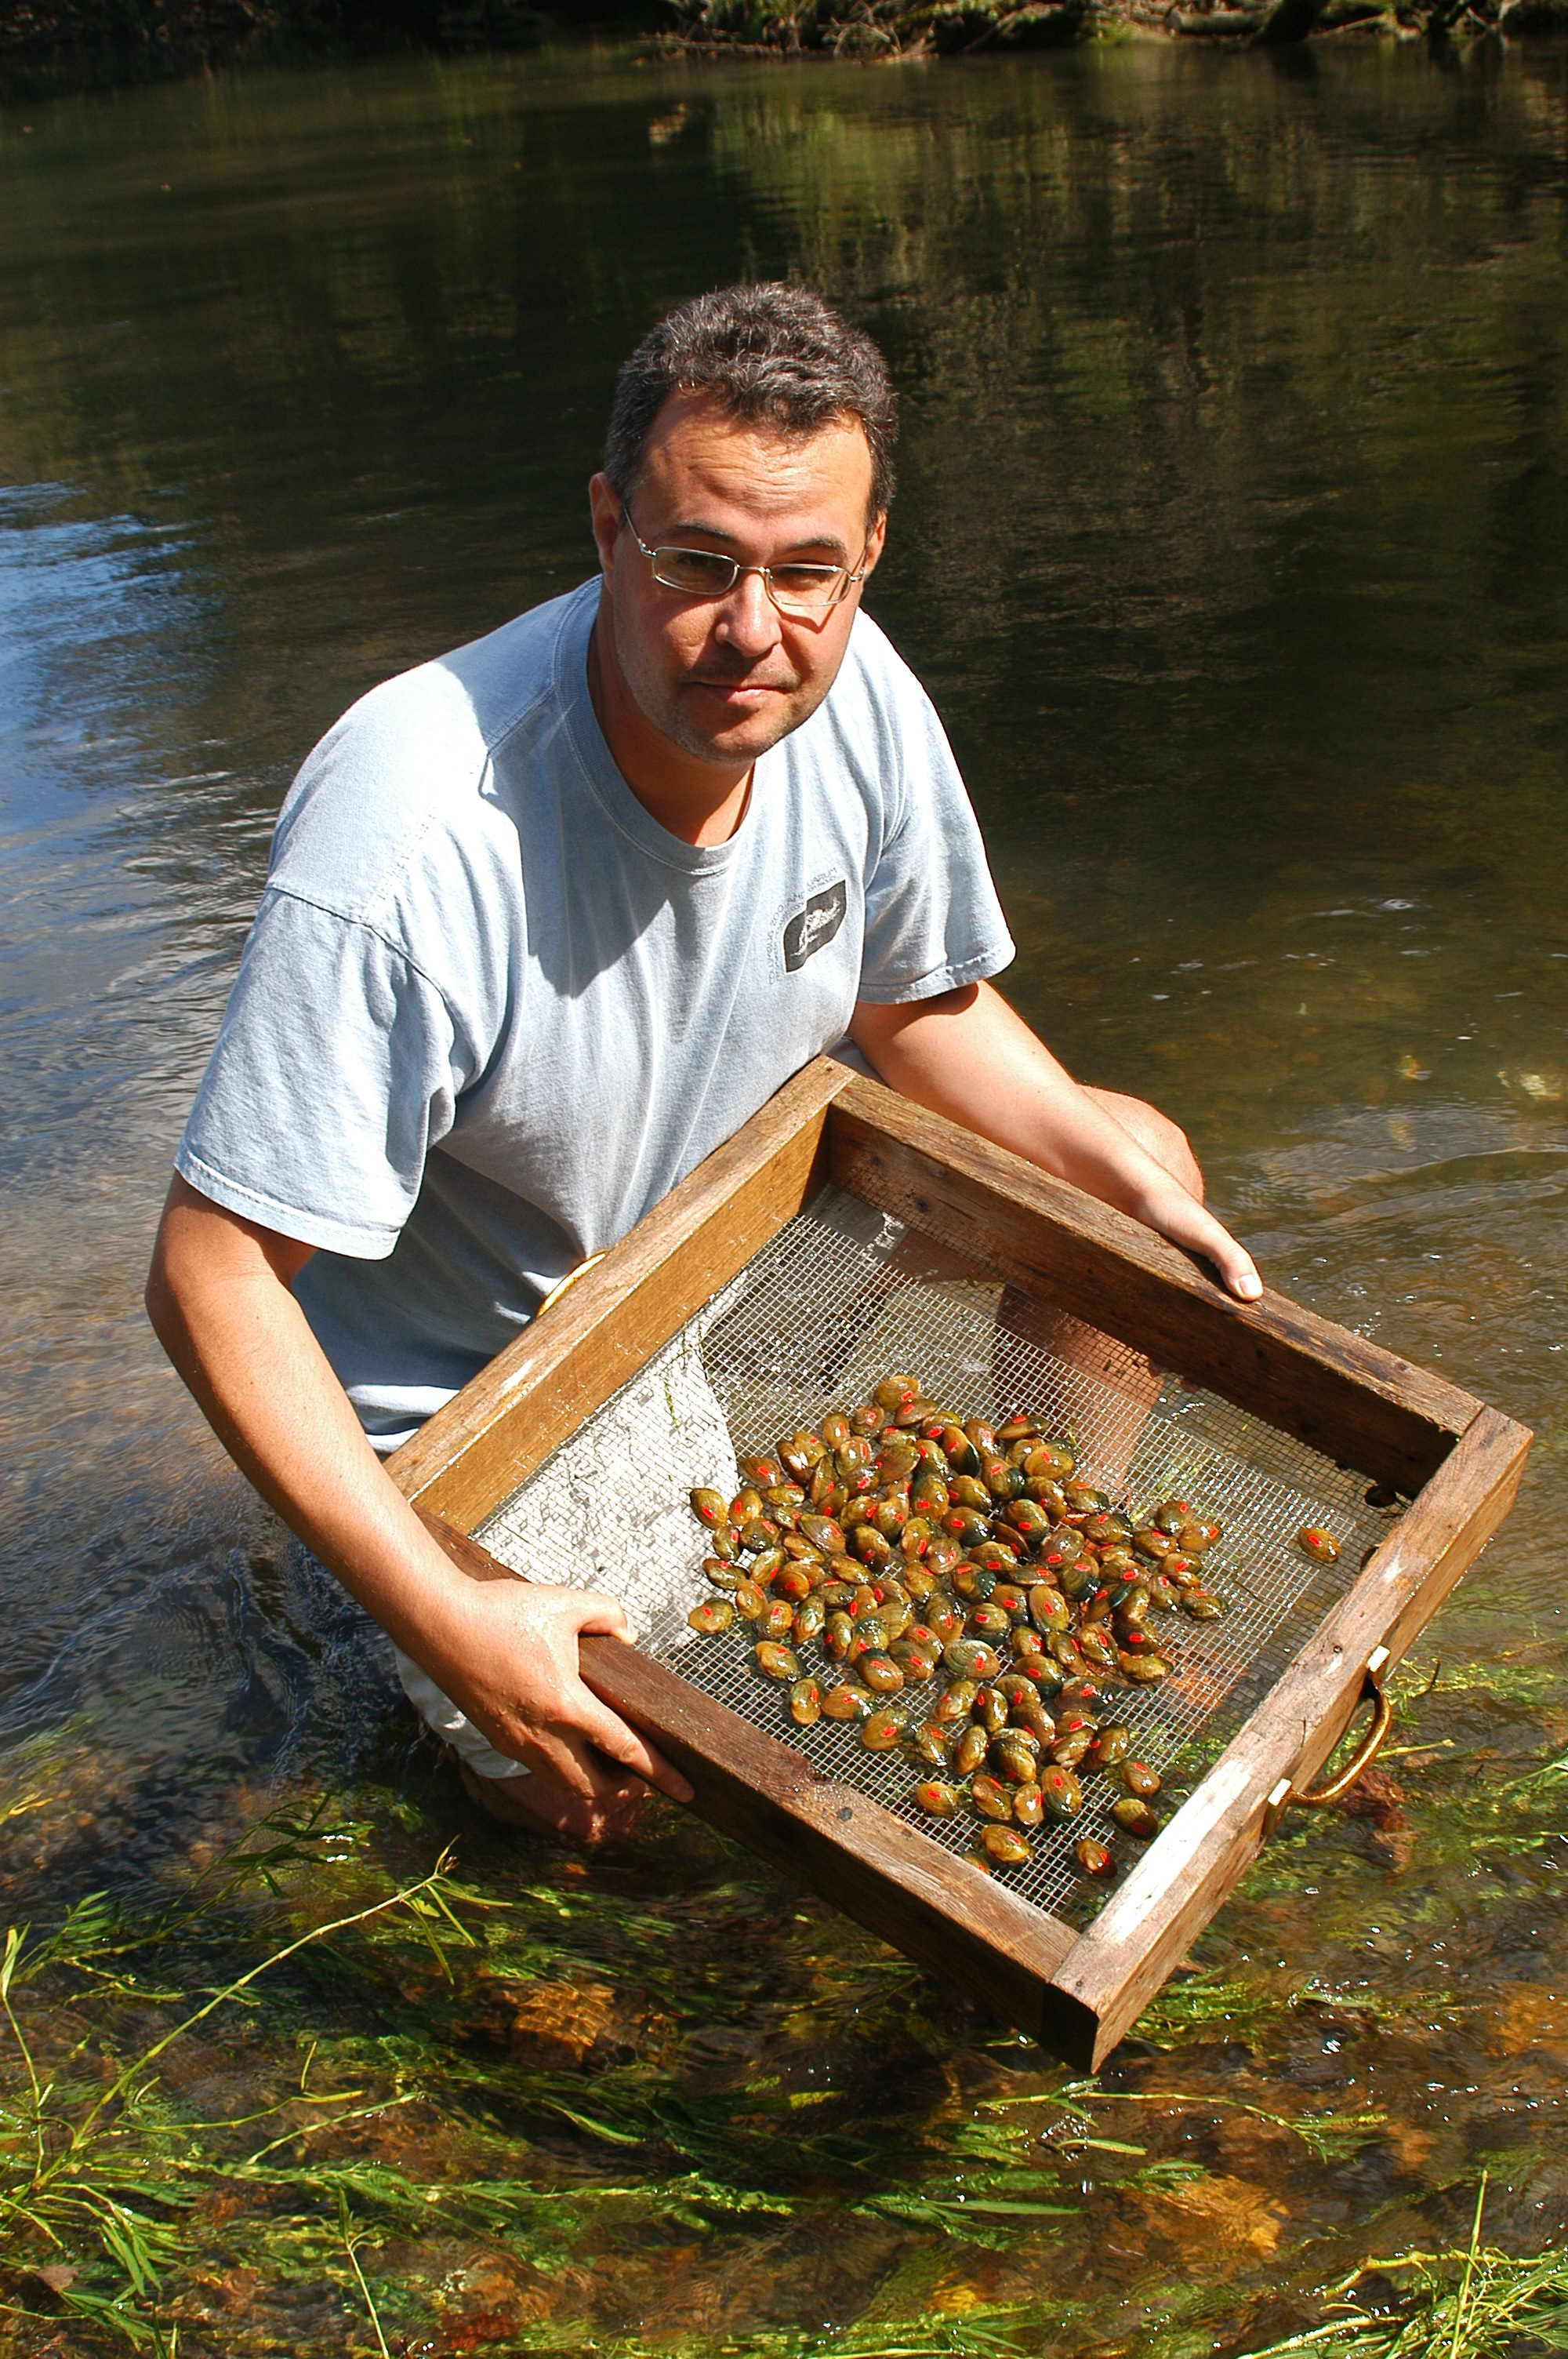 Biologist Jess Jones of our Virginia field office just received the Rachel Carson Award for Scientific Excellence. Jess is a national leader in freshwater mussel conservation. Credit: USFWS